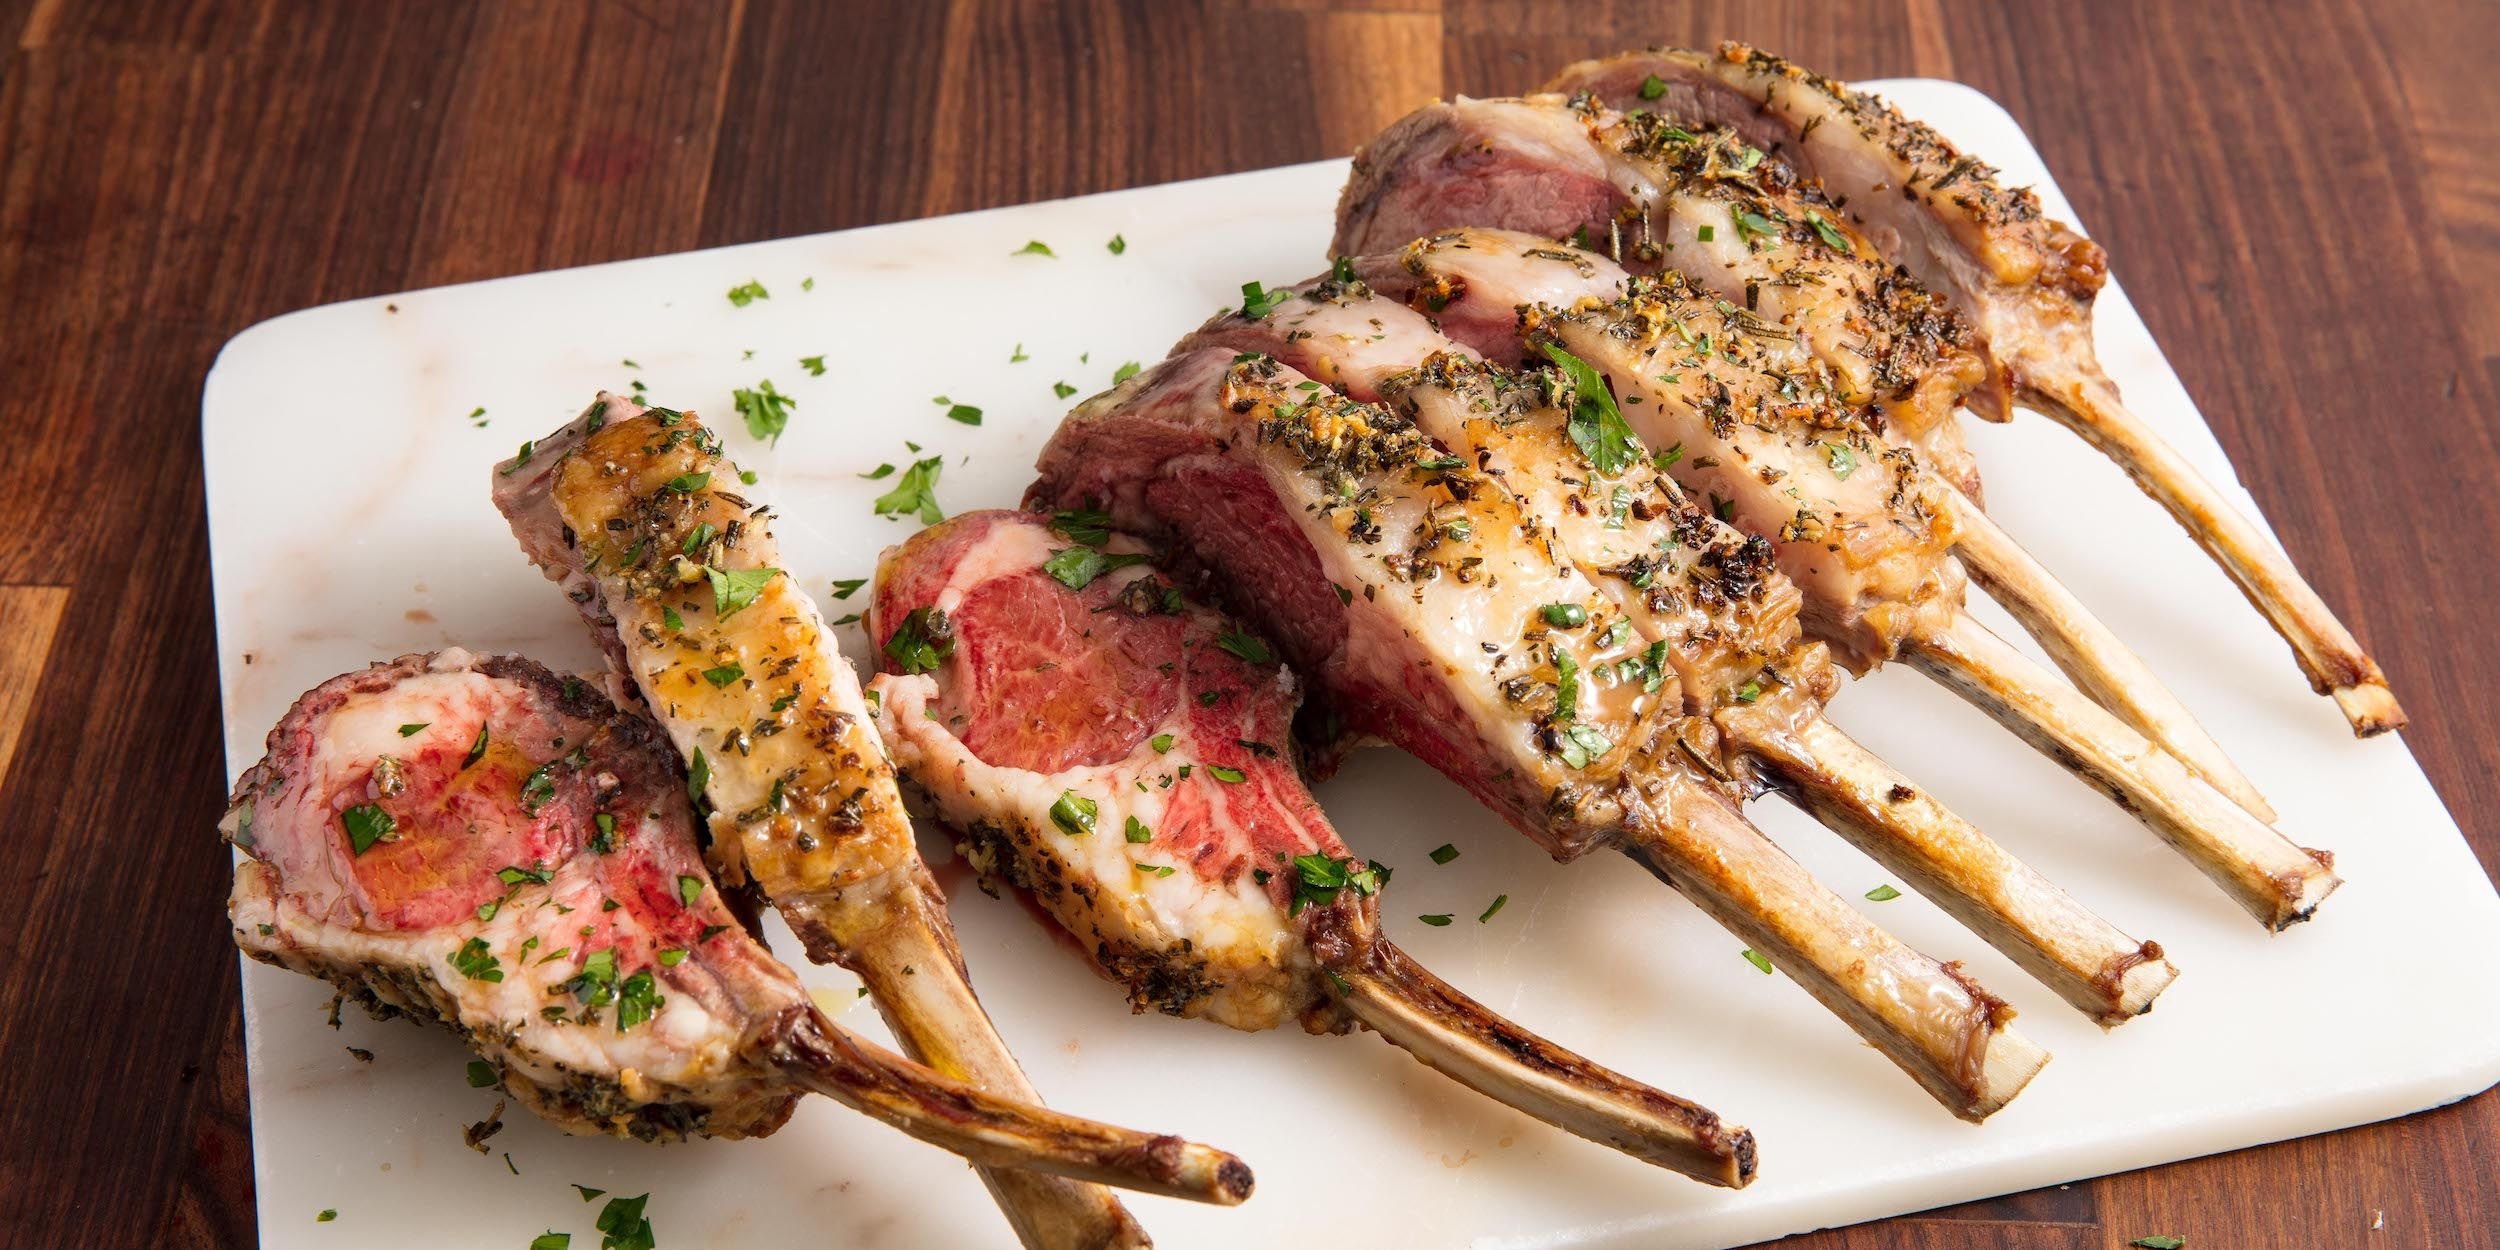 10 Best Lamb Recipes That Will Make It Your New Favorite Protein